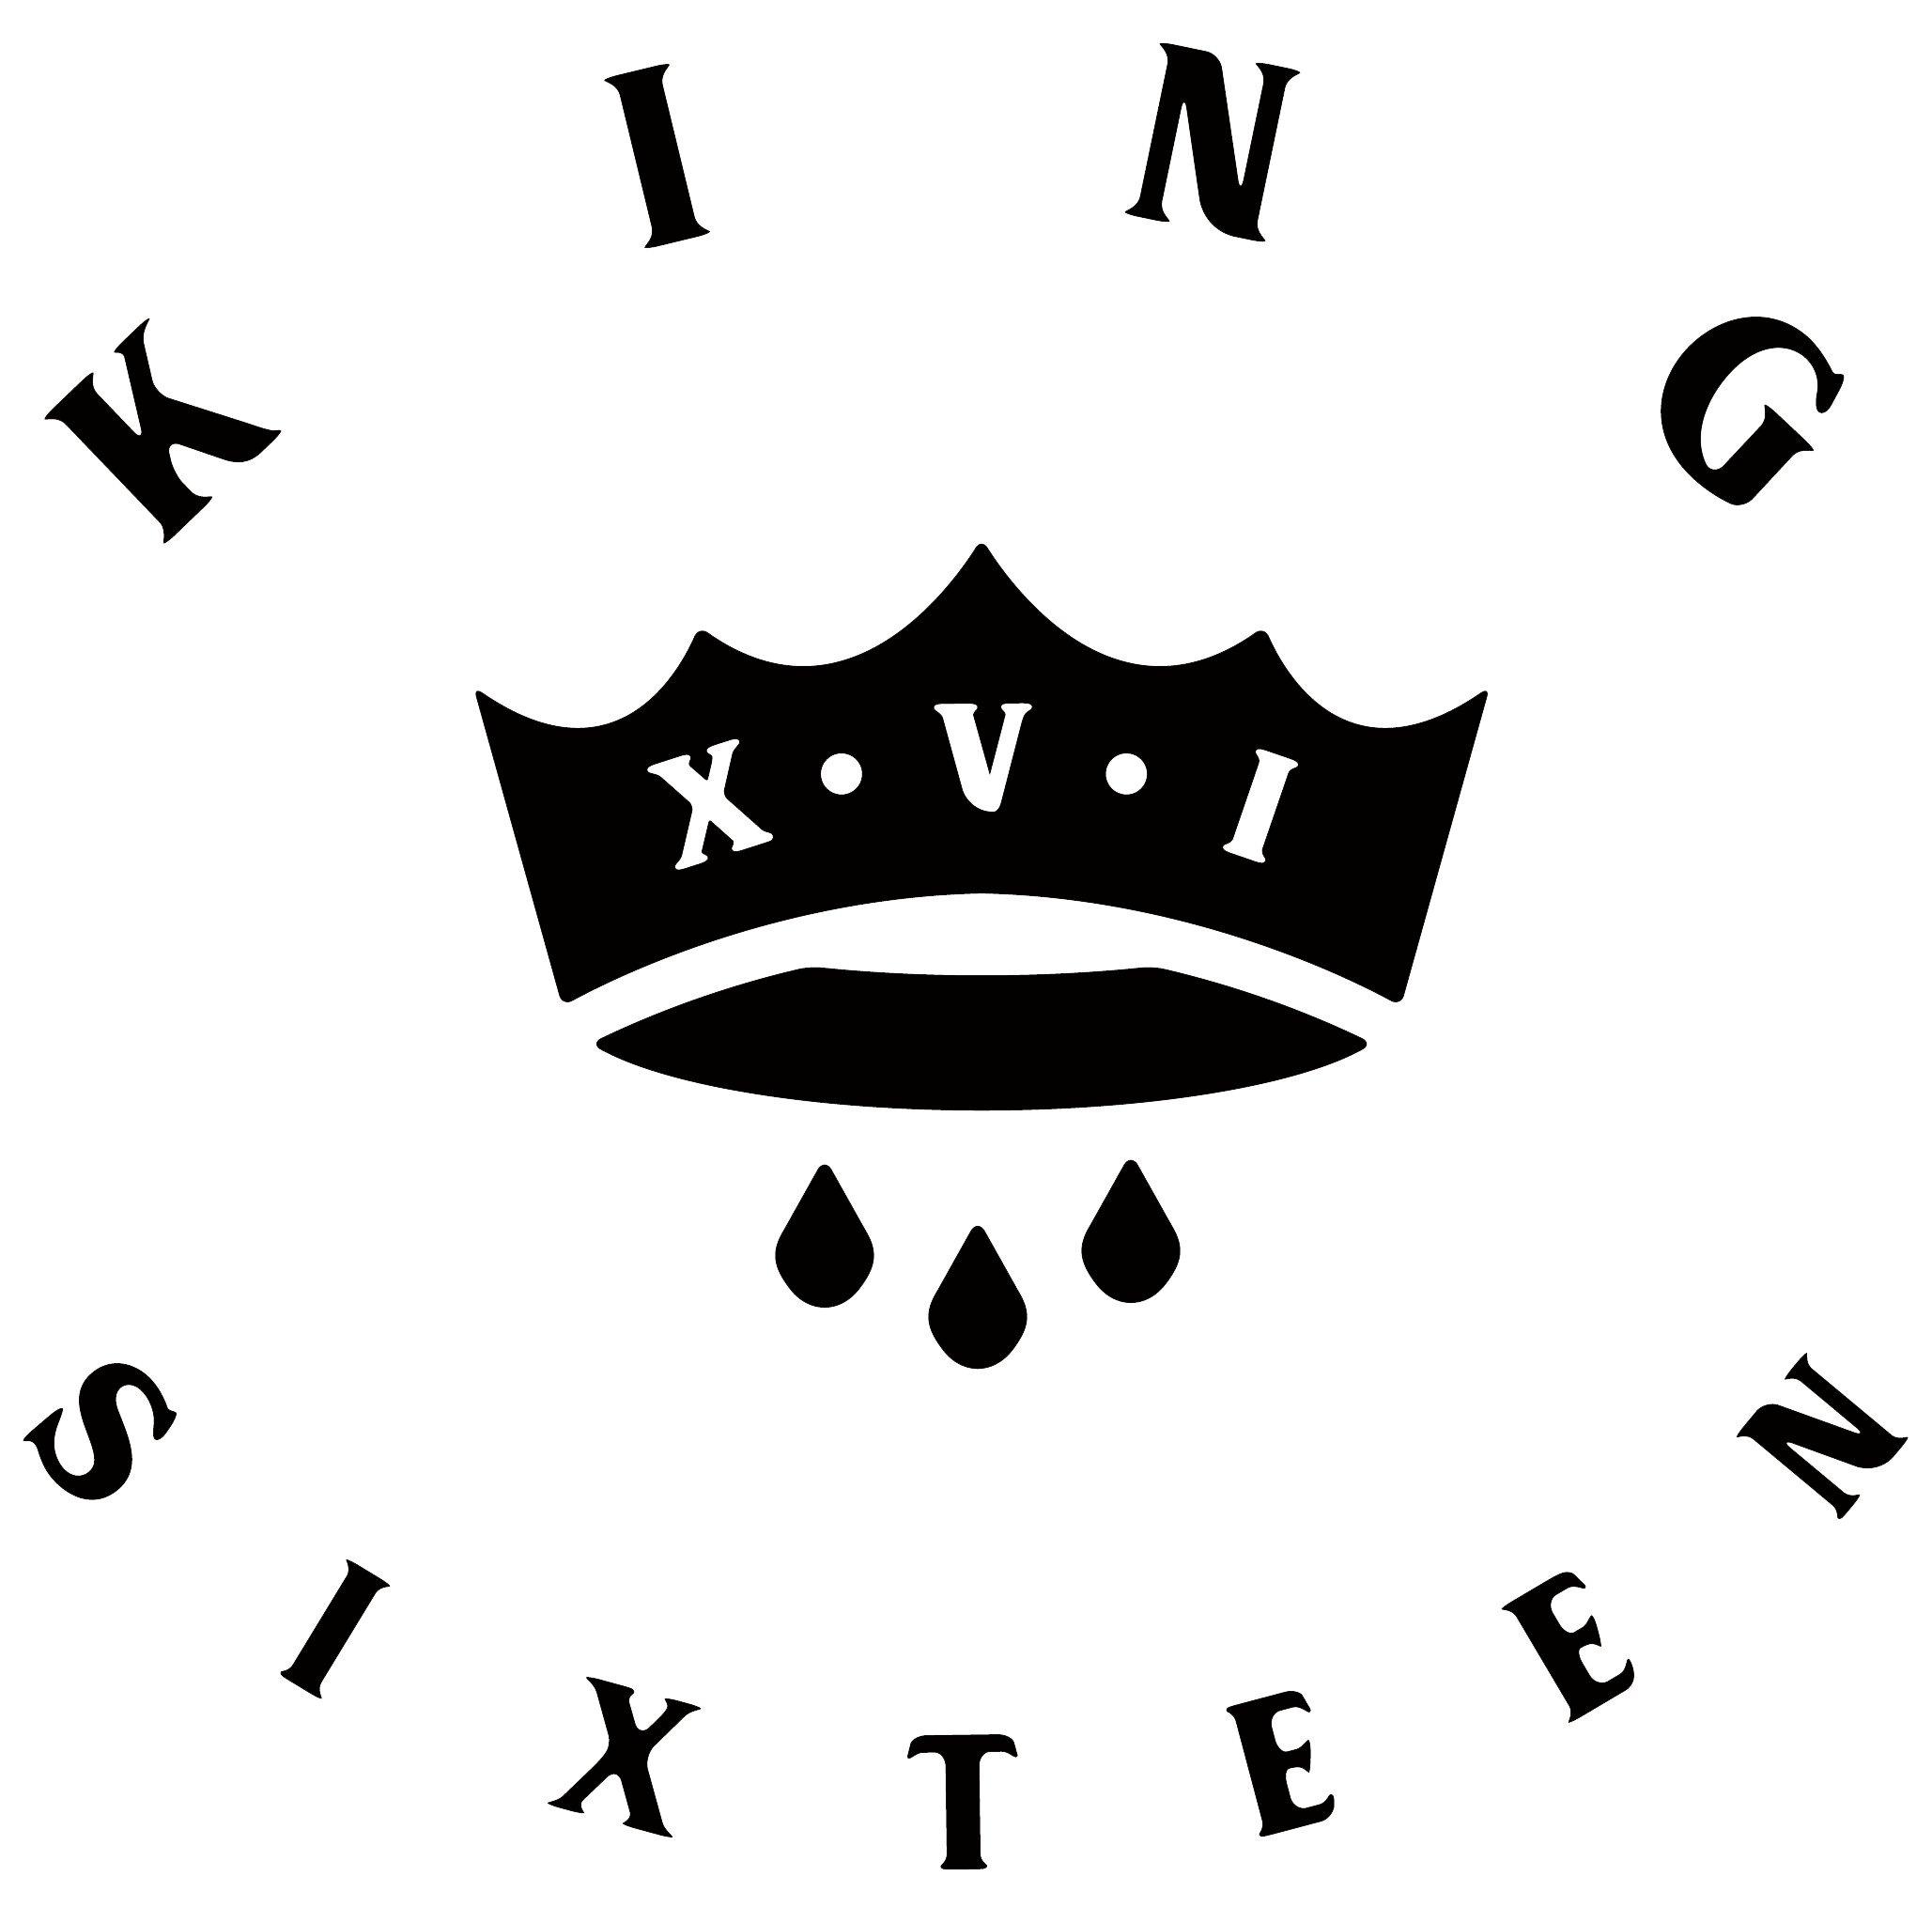 k16-crown-new-black.png